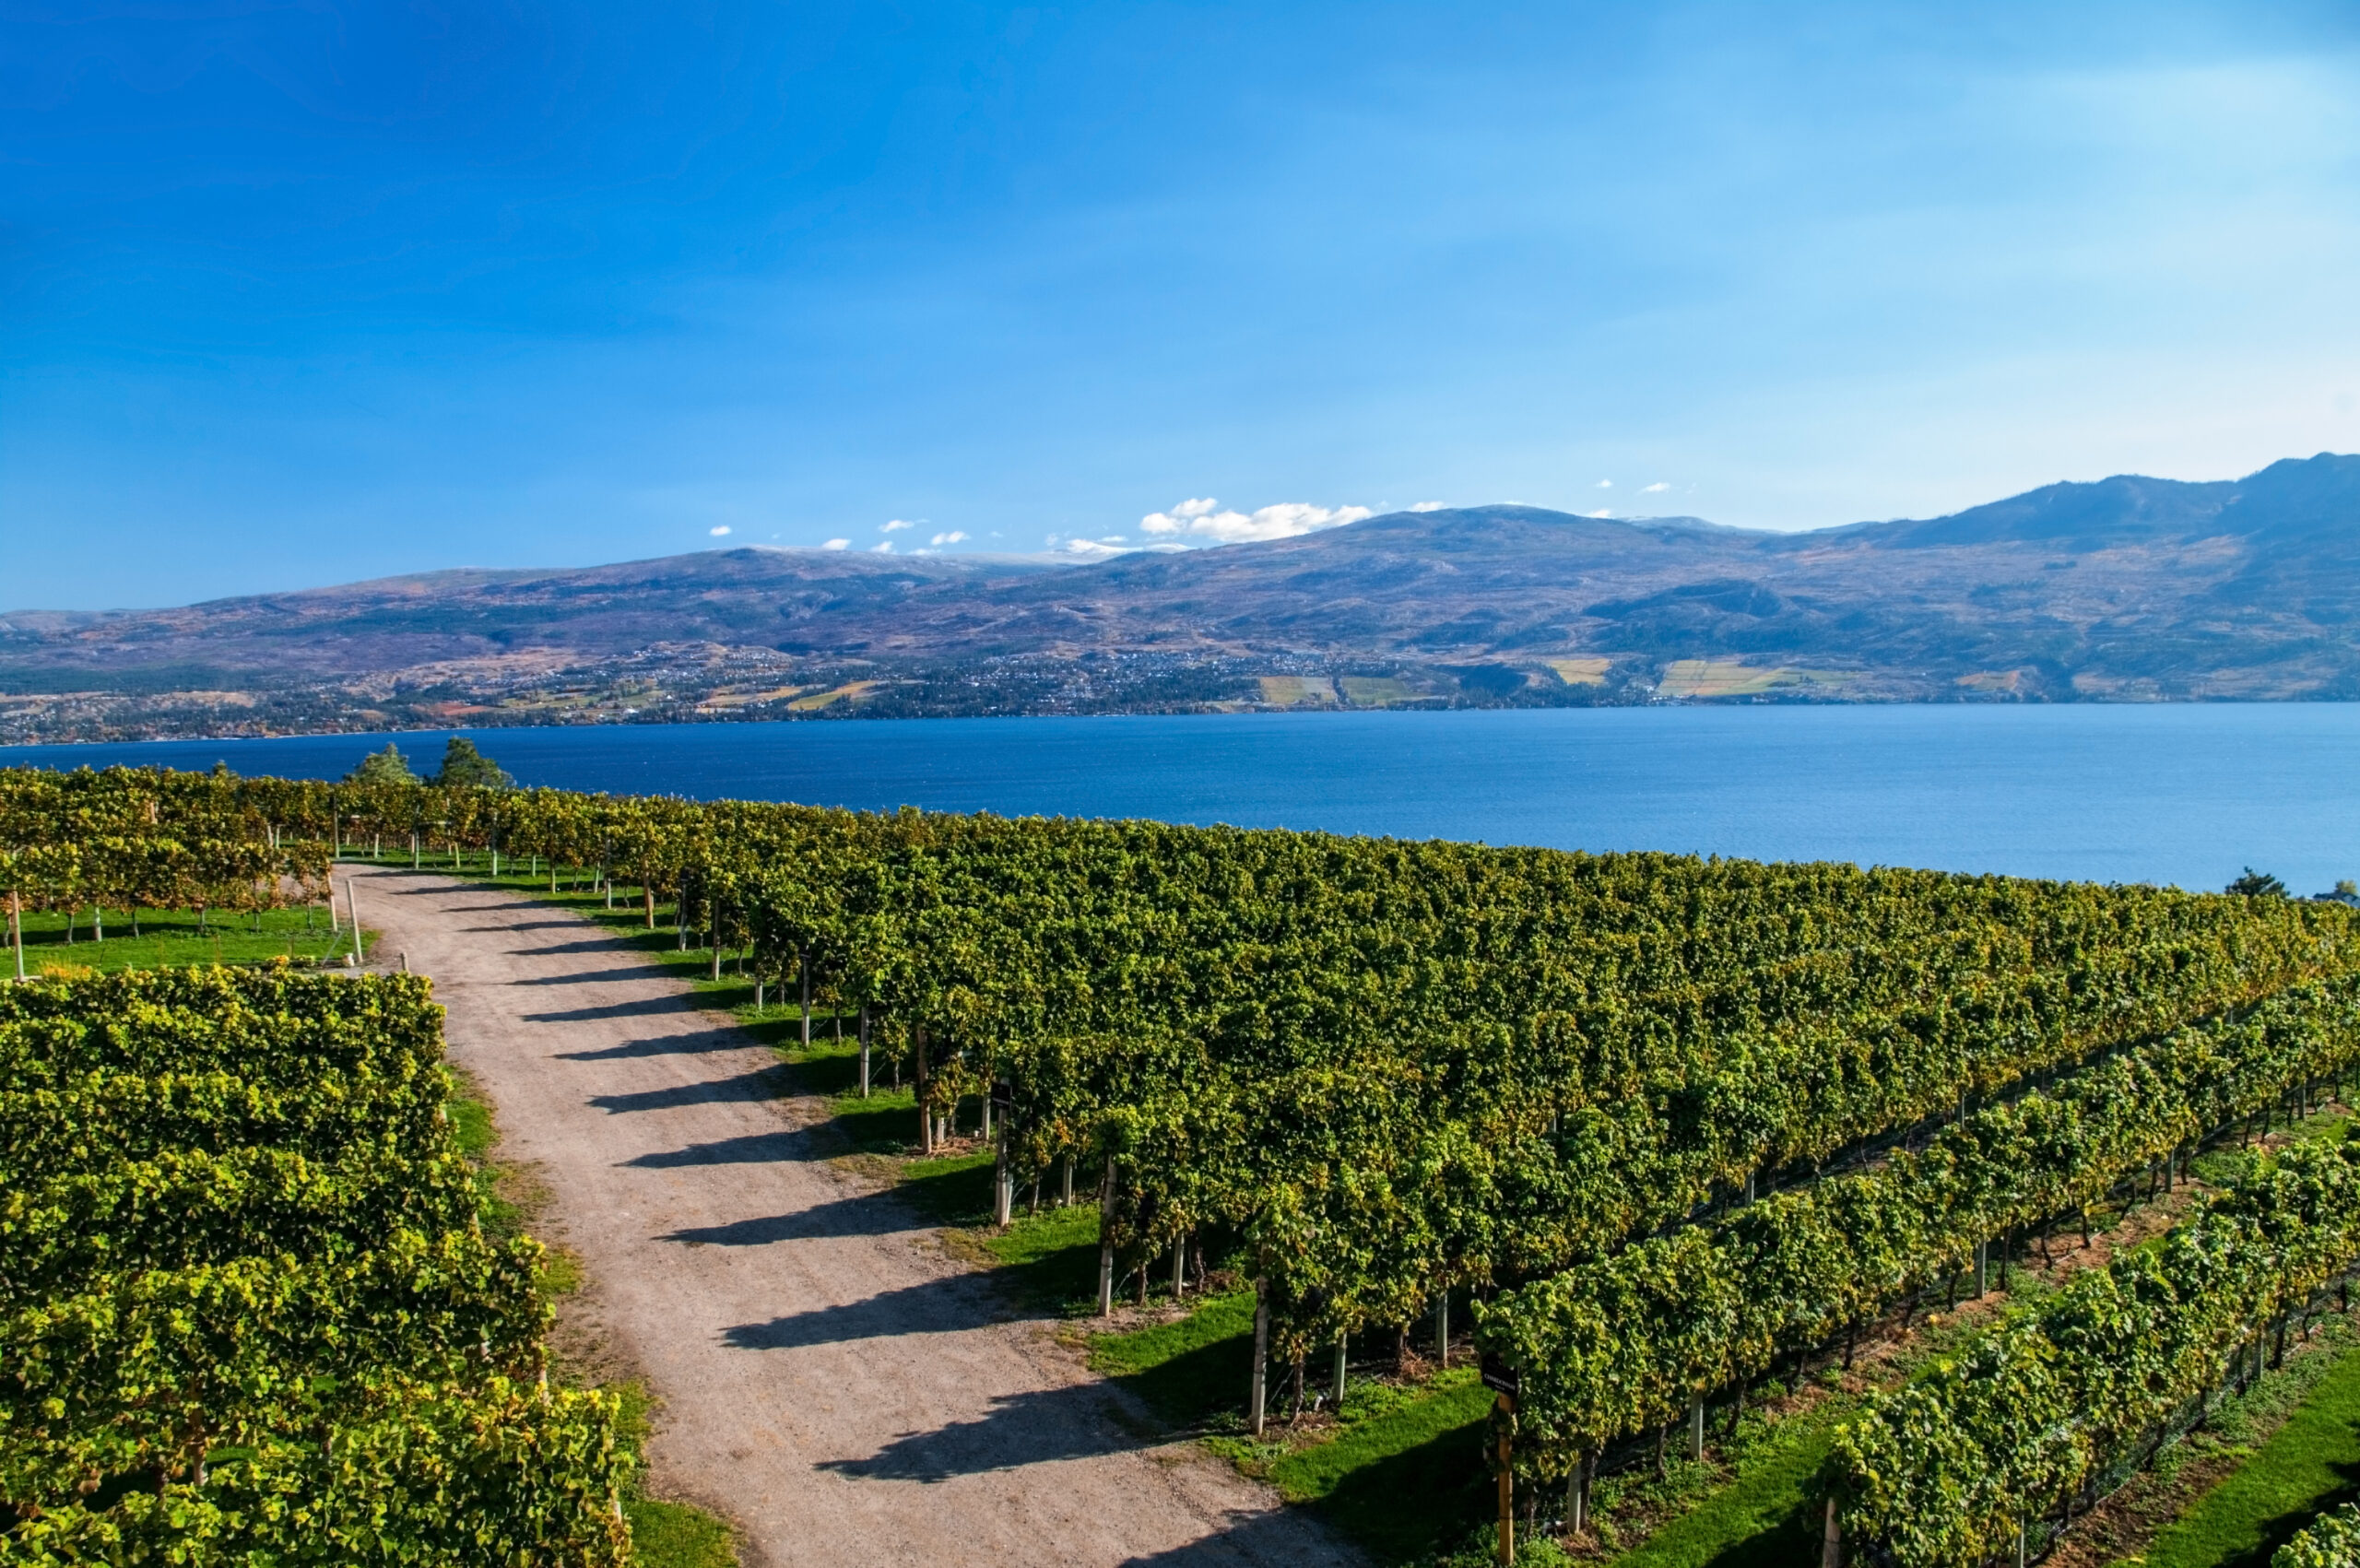 View from Mission Hill Winery of Lake Okanagan and the mountians